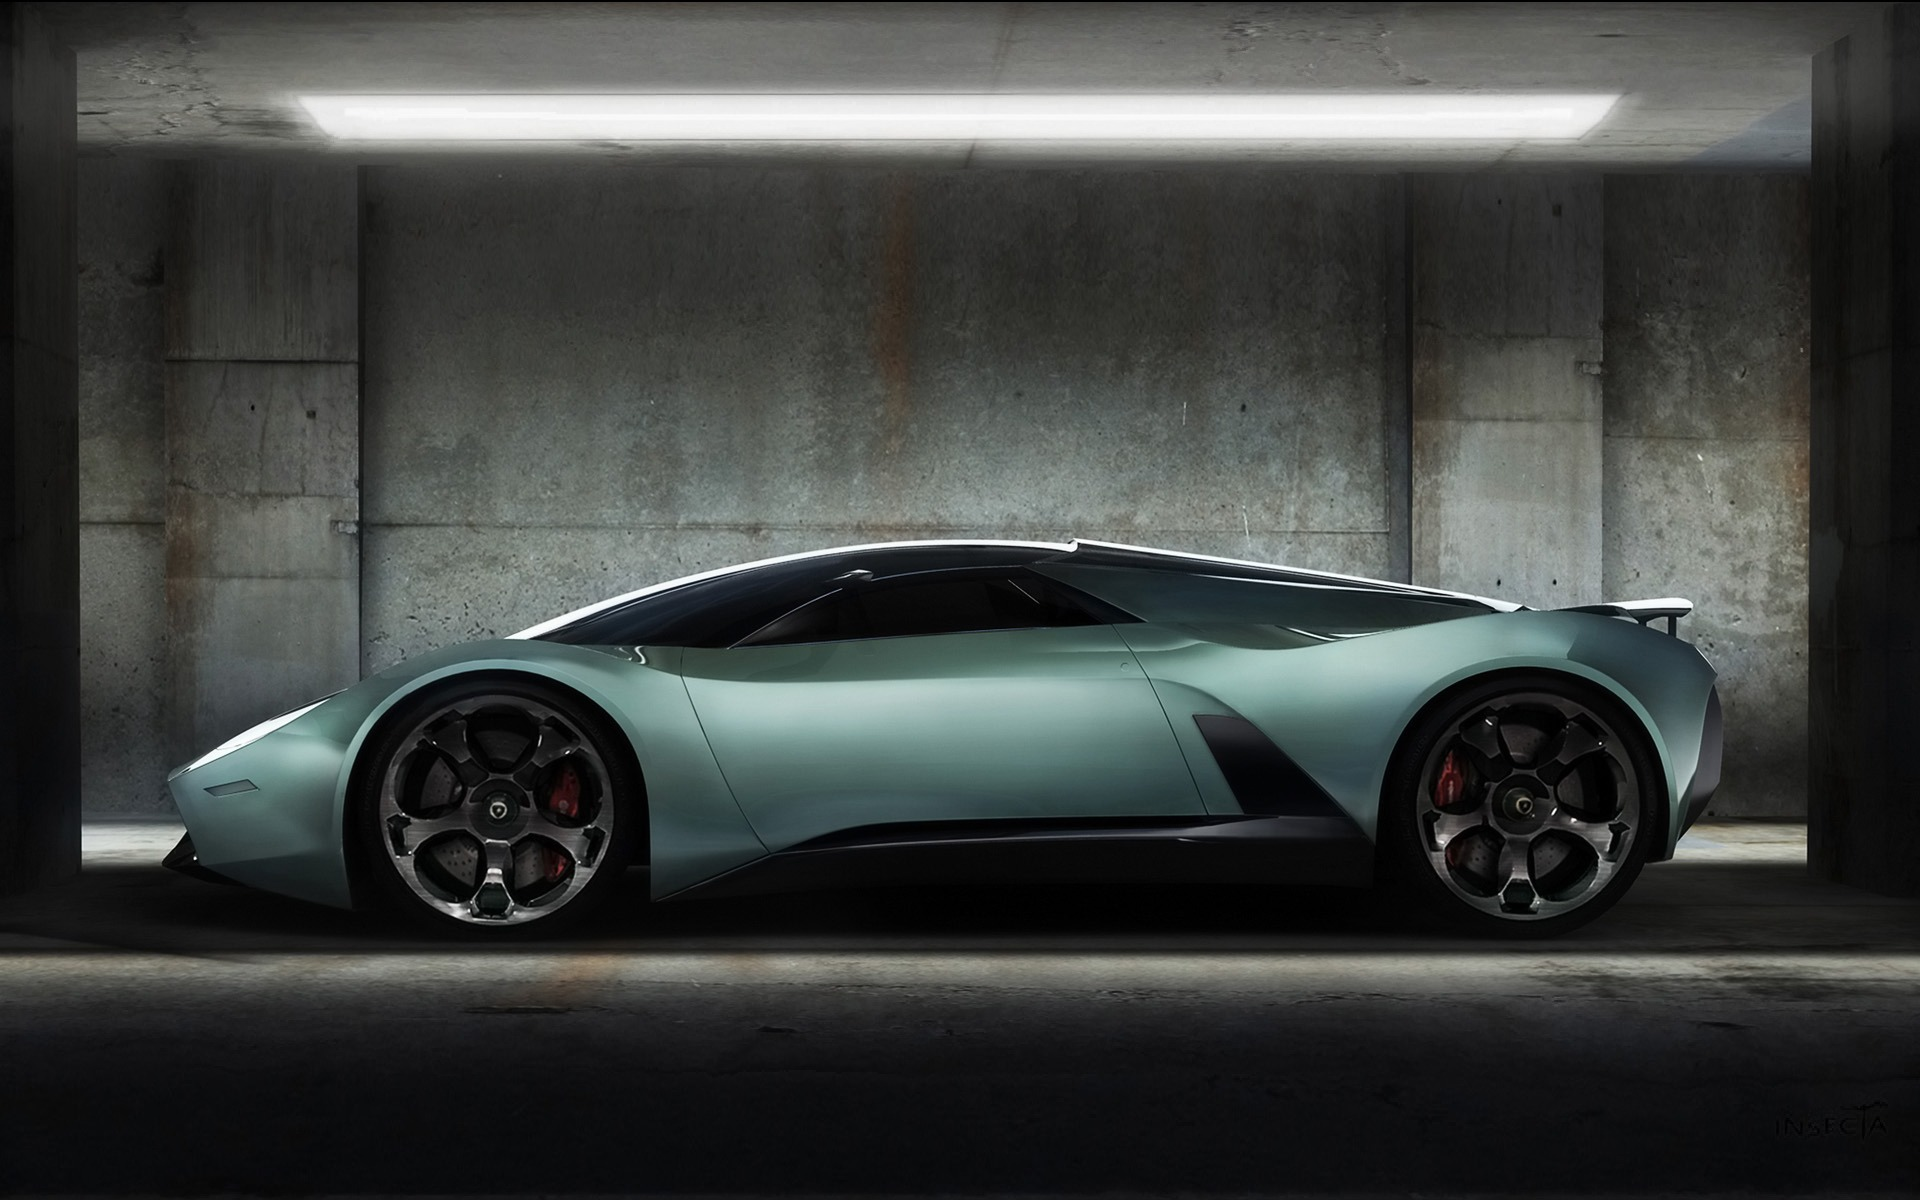 Lamborghini Insecta Concept Wallpaper Lamborghini Cars Wallpapers In